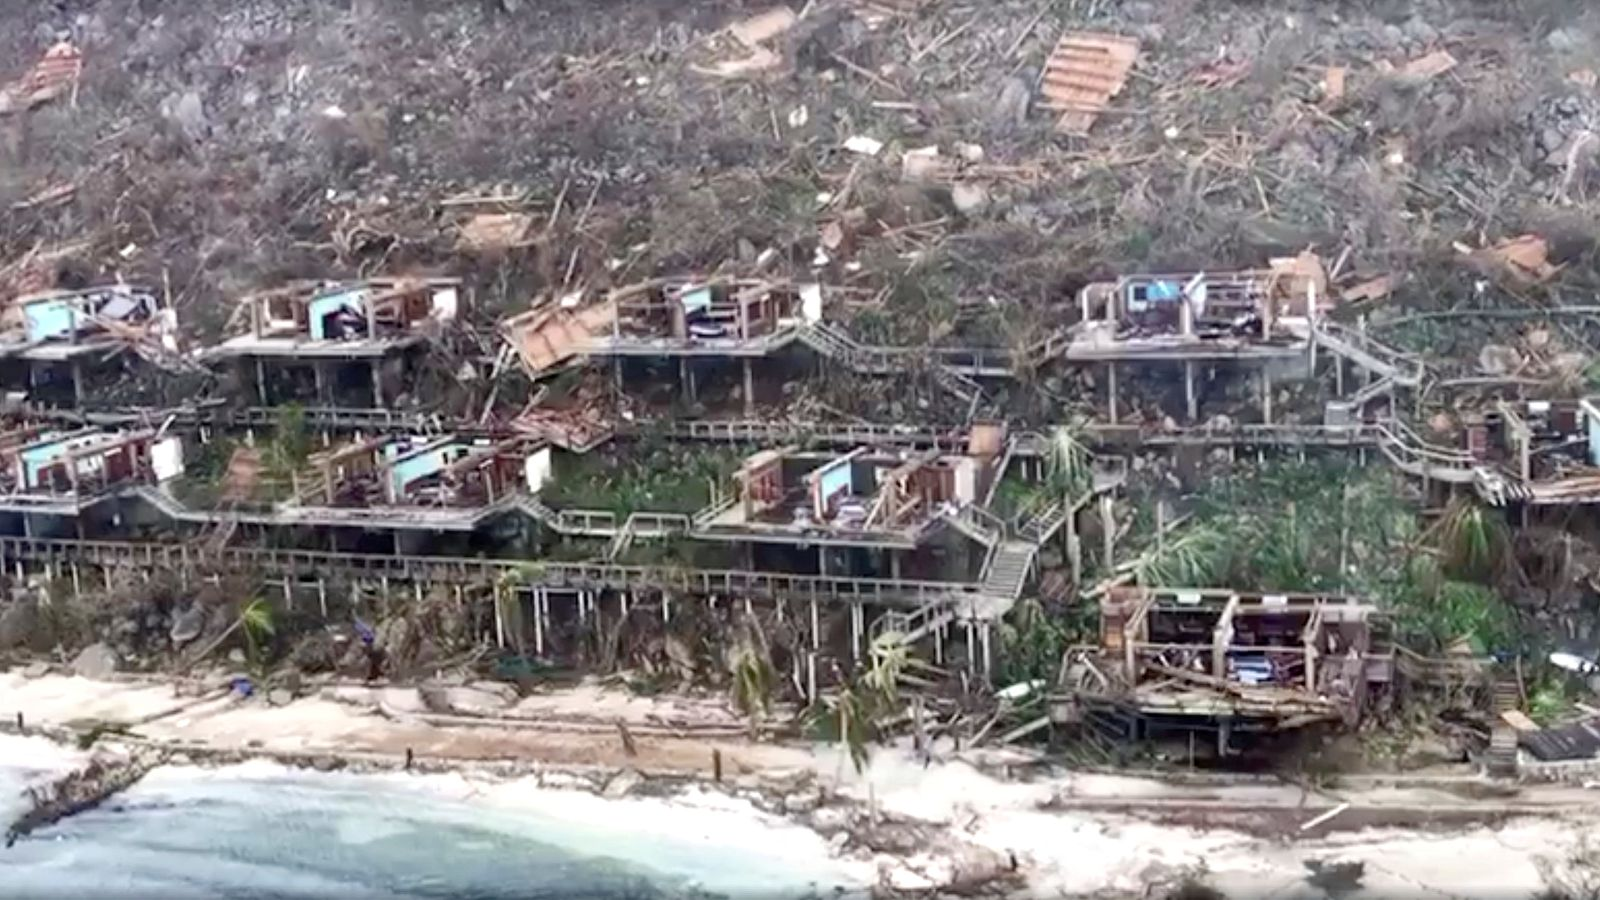 Wreckage cause by Hurricane Irma in the British Virgin Islands. Pic: Caribbean Buzz Helicopters